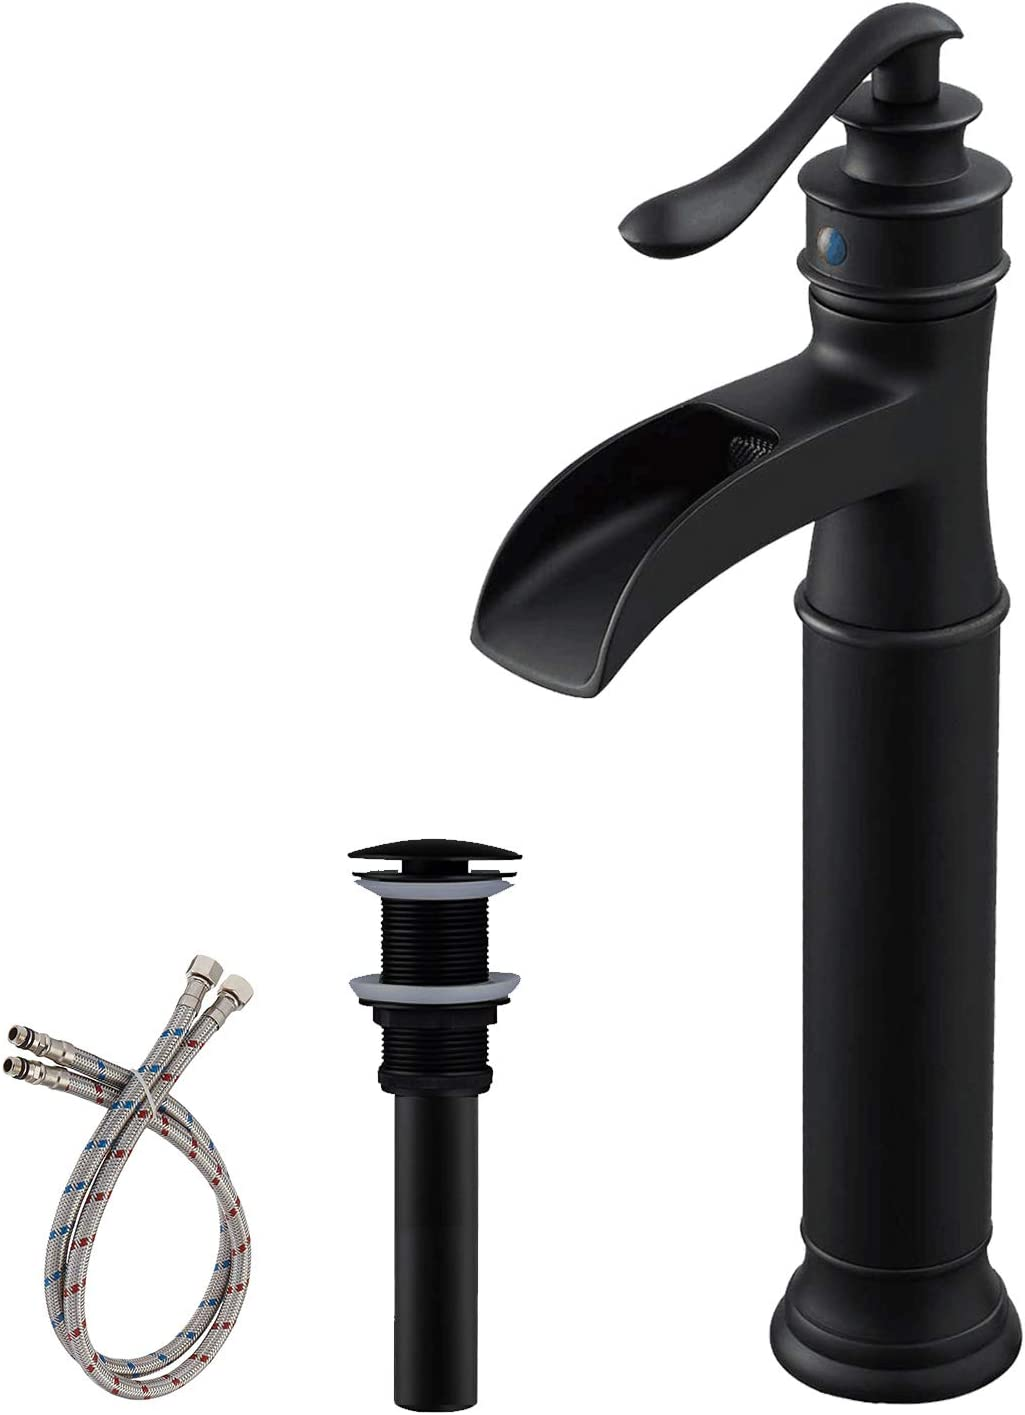 Bwe Black Bathroom Faucet With Drain Assembly And Supply Line Lead Free Single Handle One Hole Waterfall Vessel Sink Faucet Matte Black Lavatory Mixer Tap Deck Mount